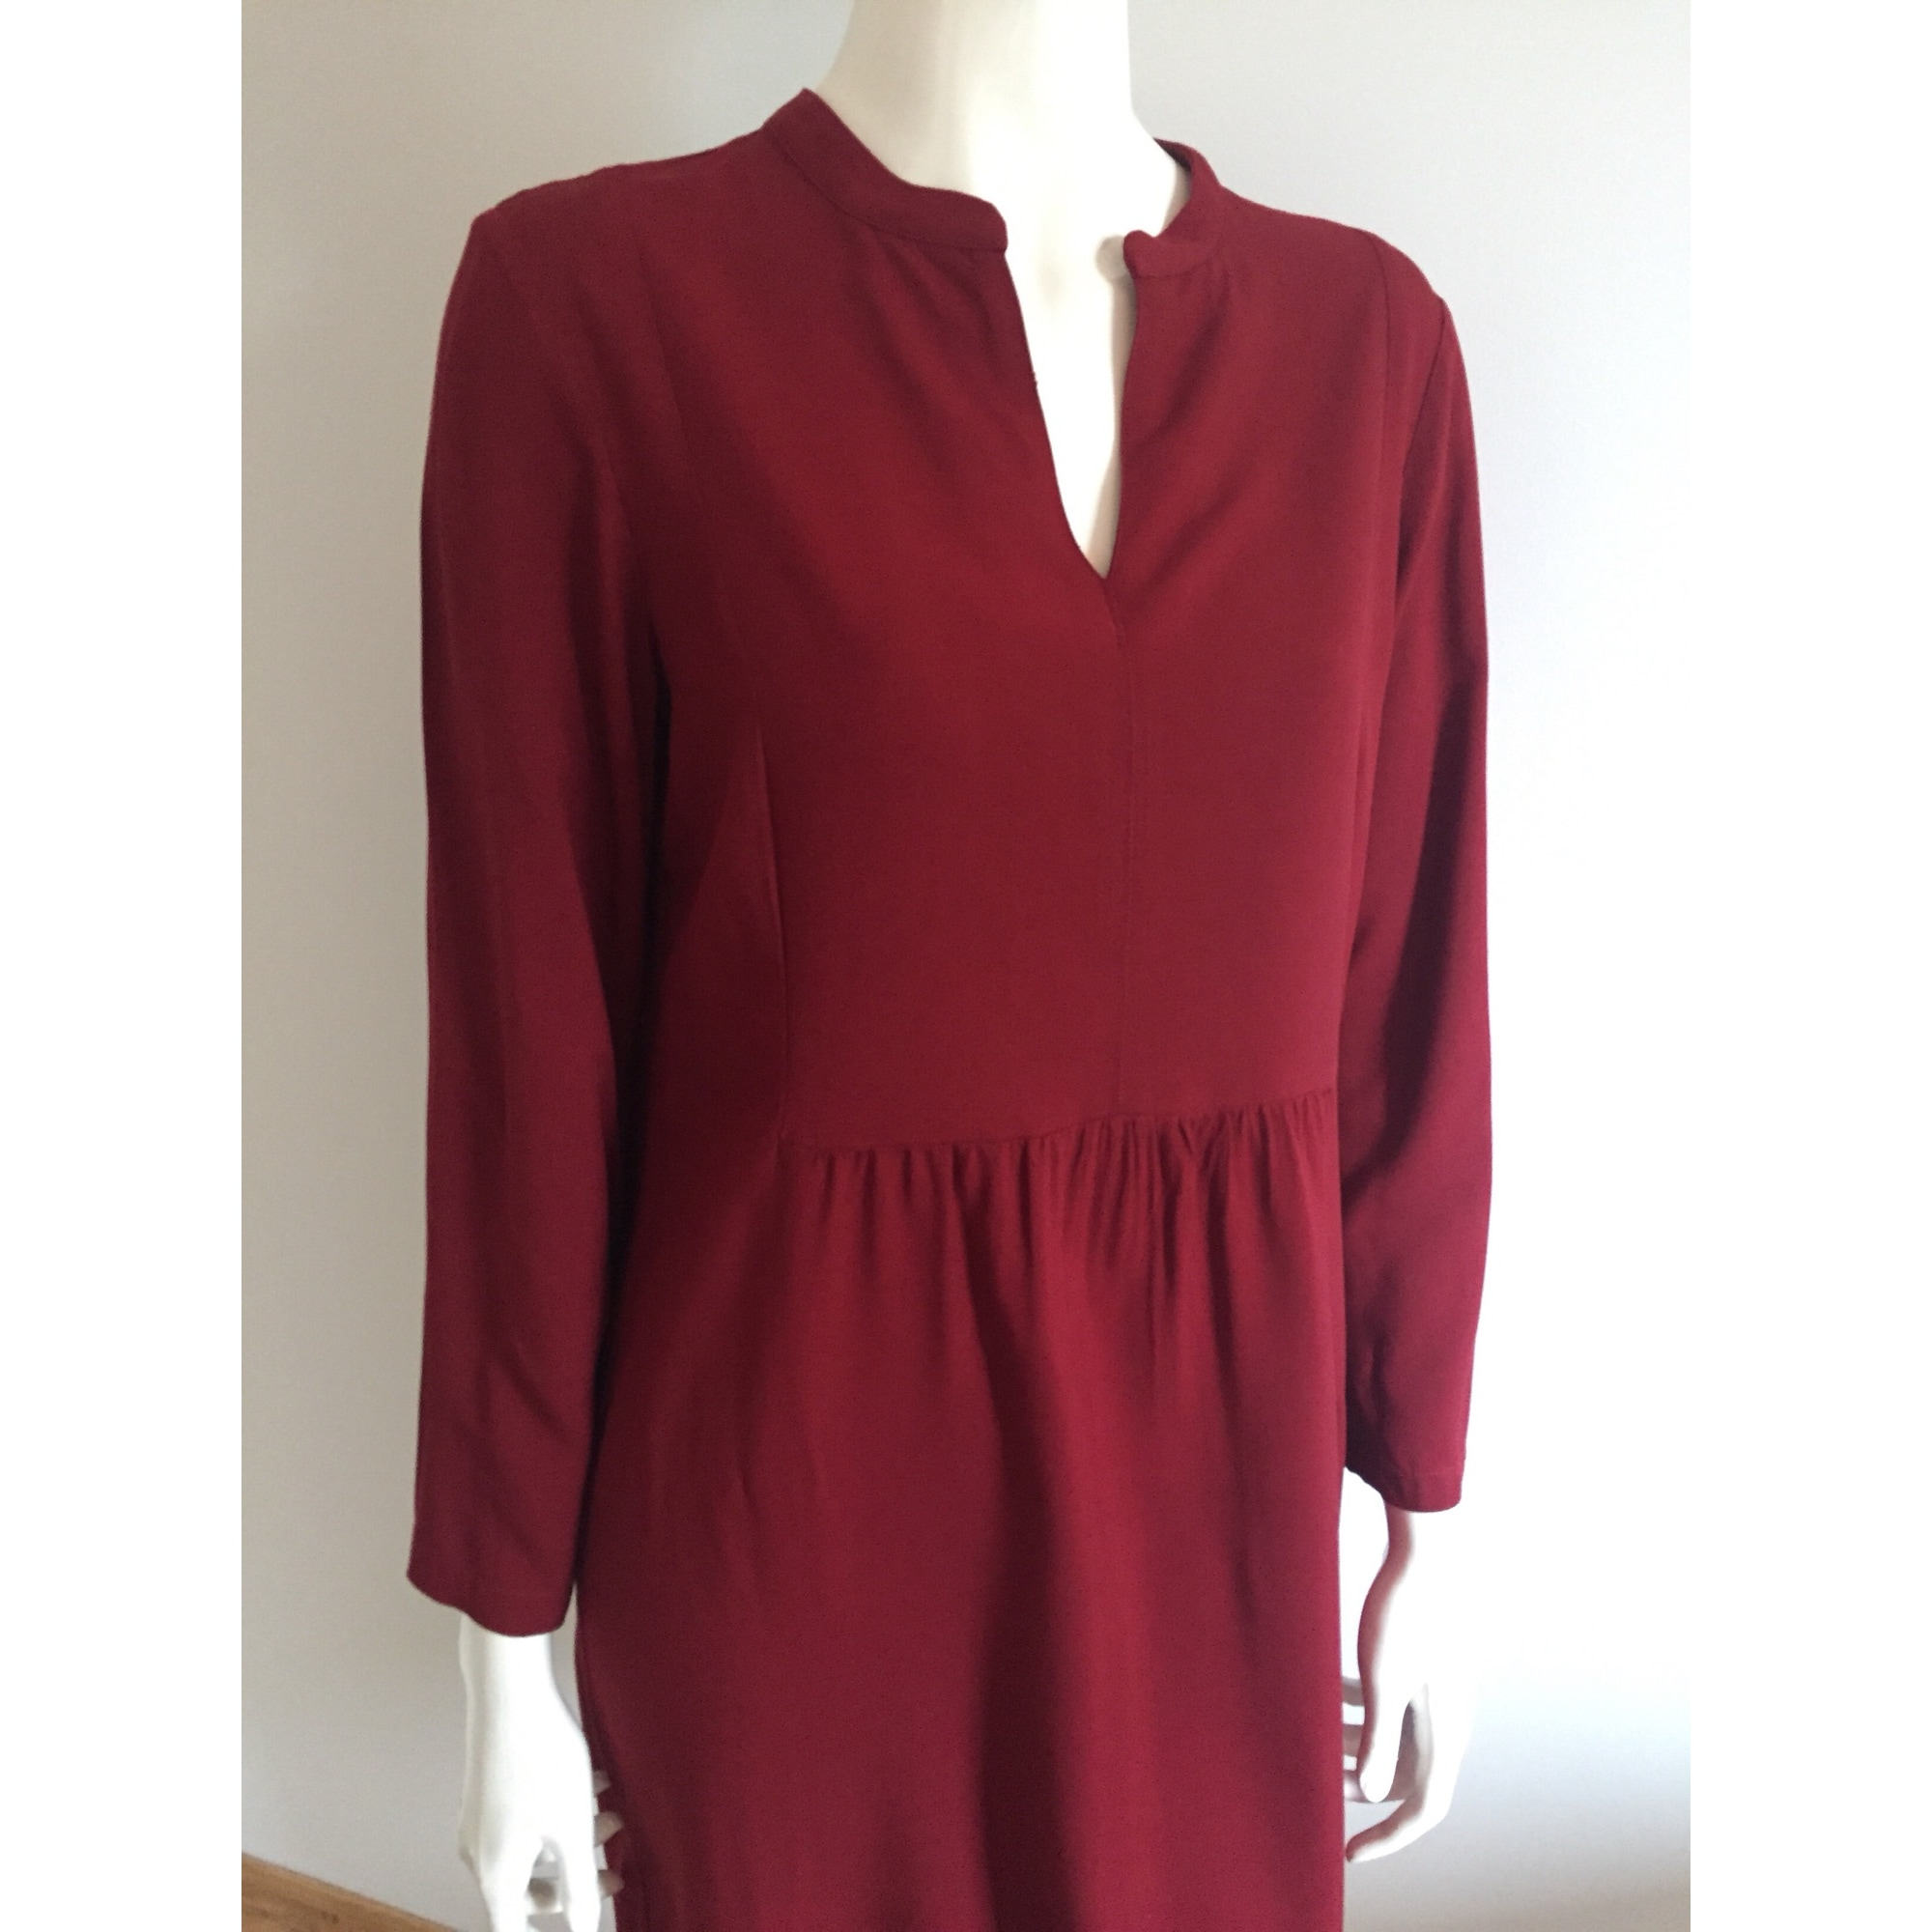 Robe courte NICE THINGS Rouge, bordeaux